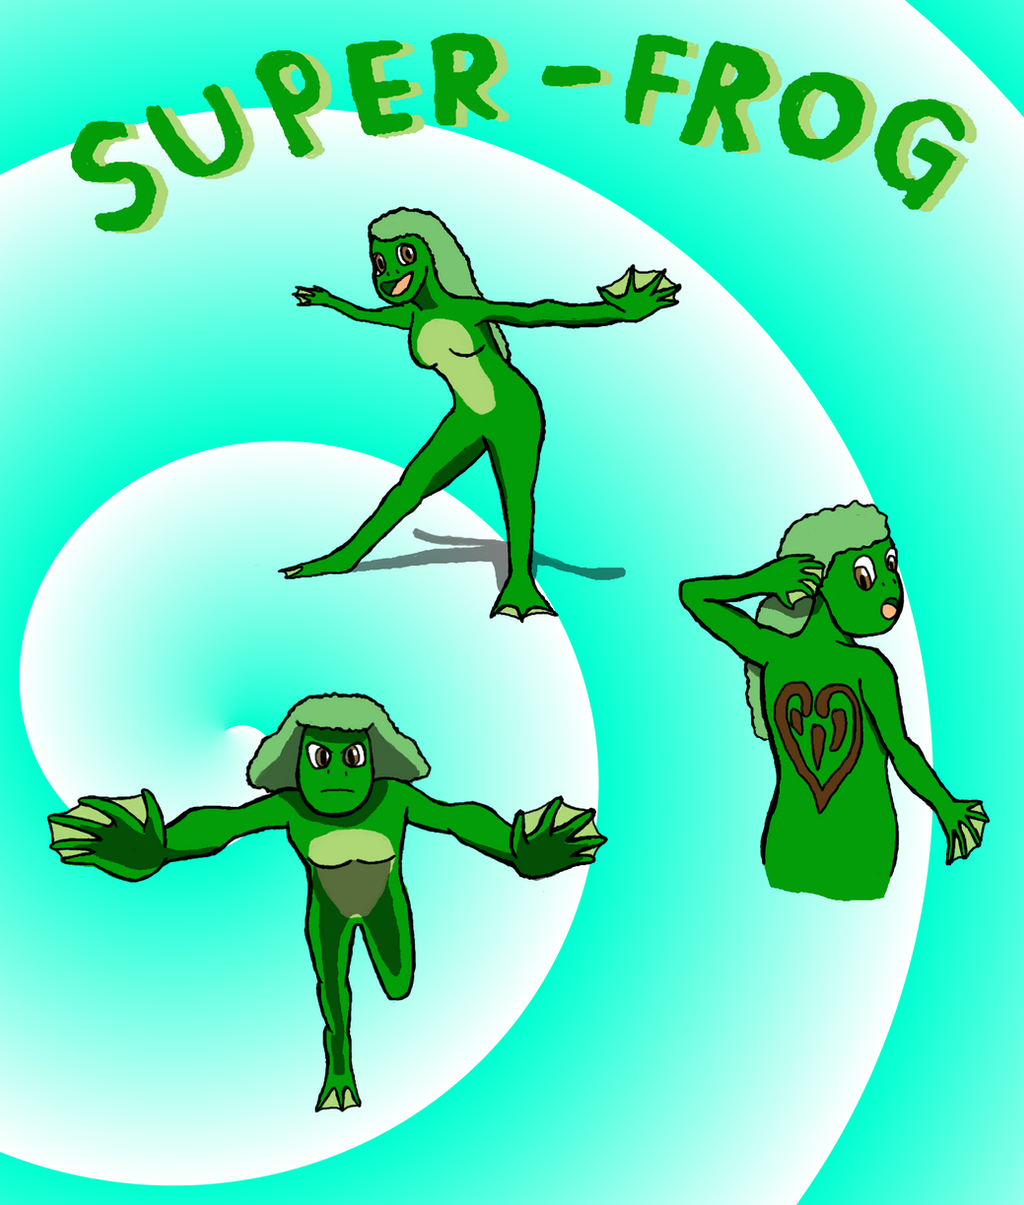 The super frog by kuveko2010 on deviantart for Frog transformation